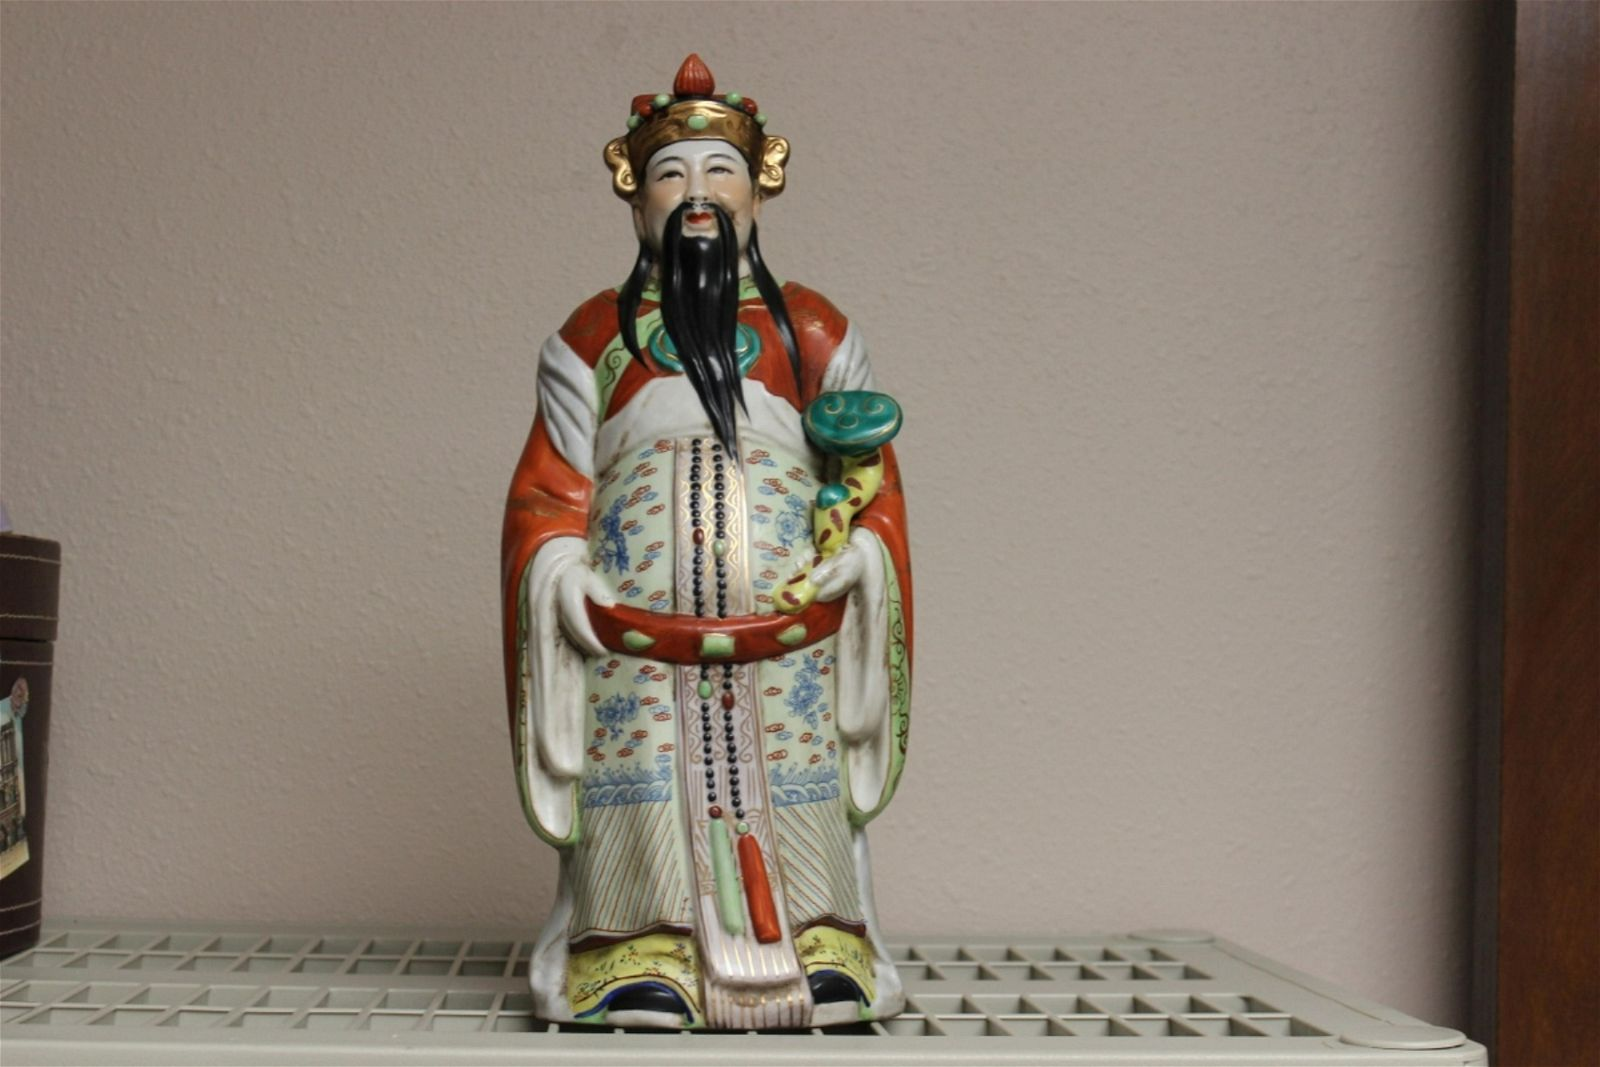 A Chinese Porcelain Figure - Early to Mid 20th Century